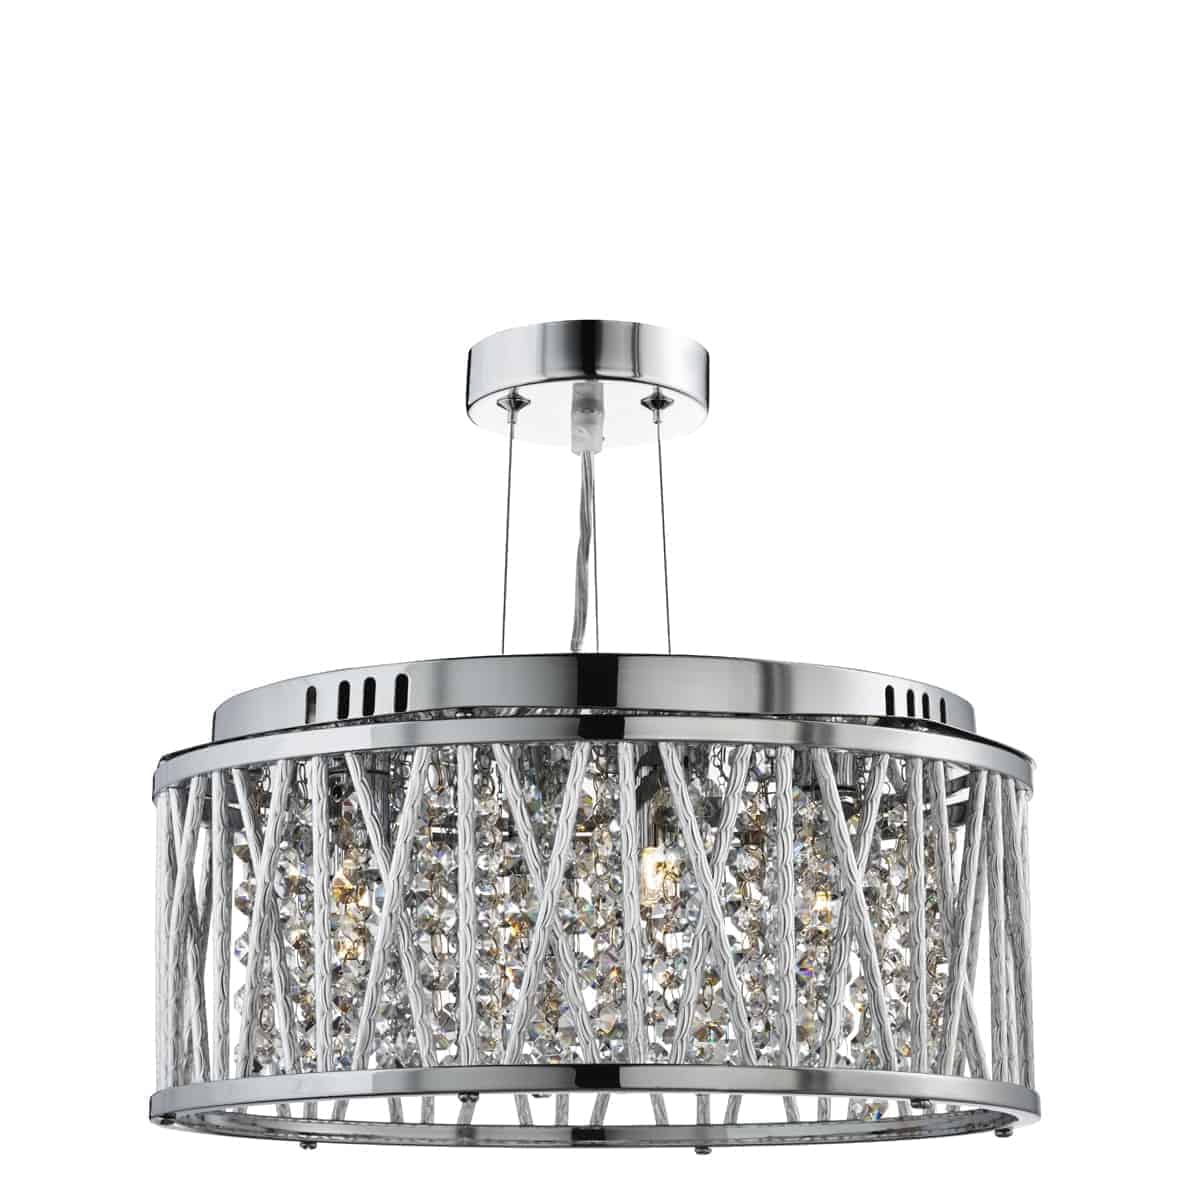 Searchlight 8333-3CC Elise Chrome 3 Light Fitting with Crystal Button Drops